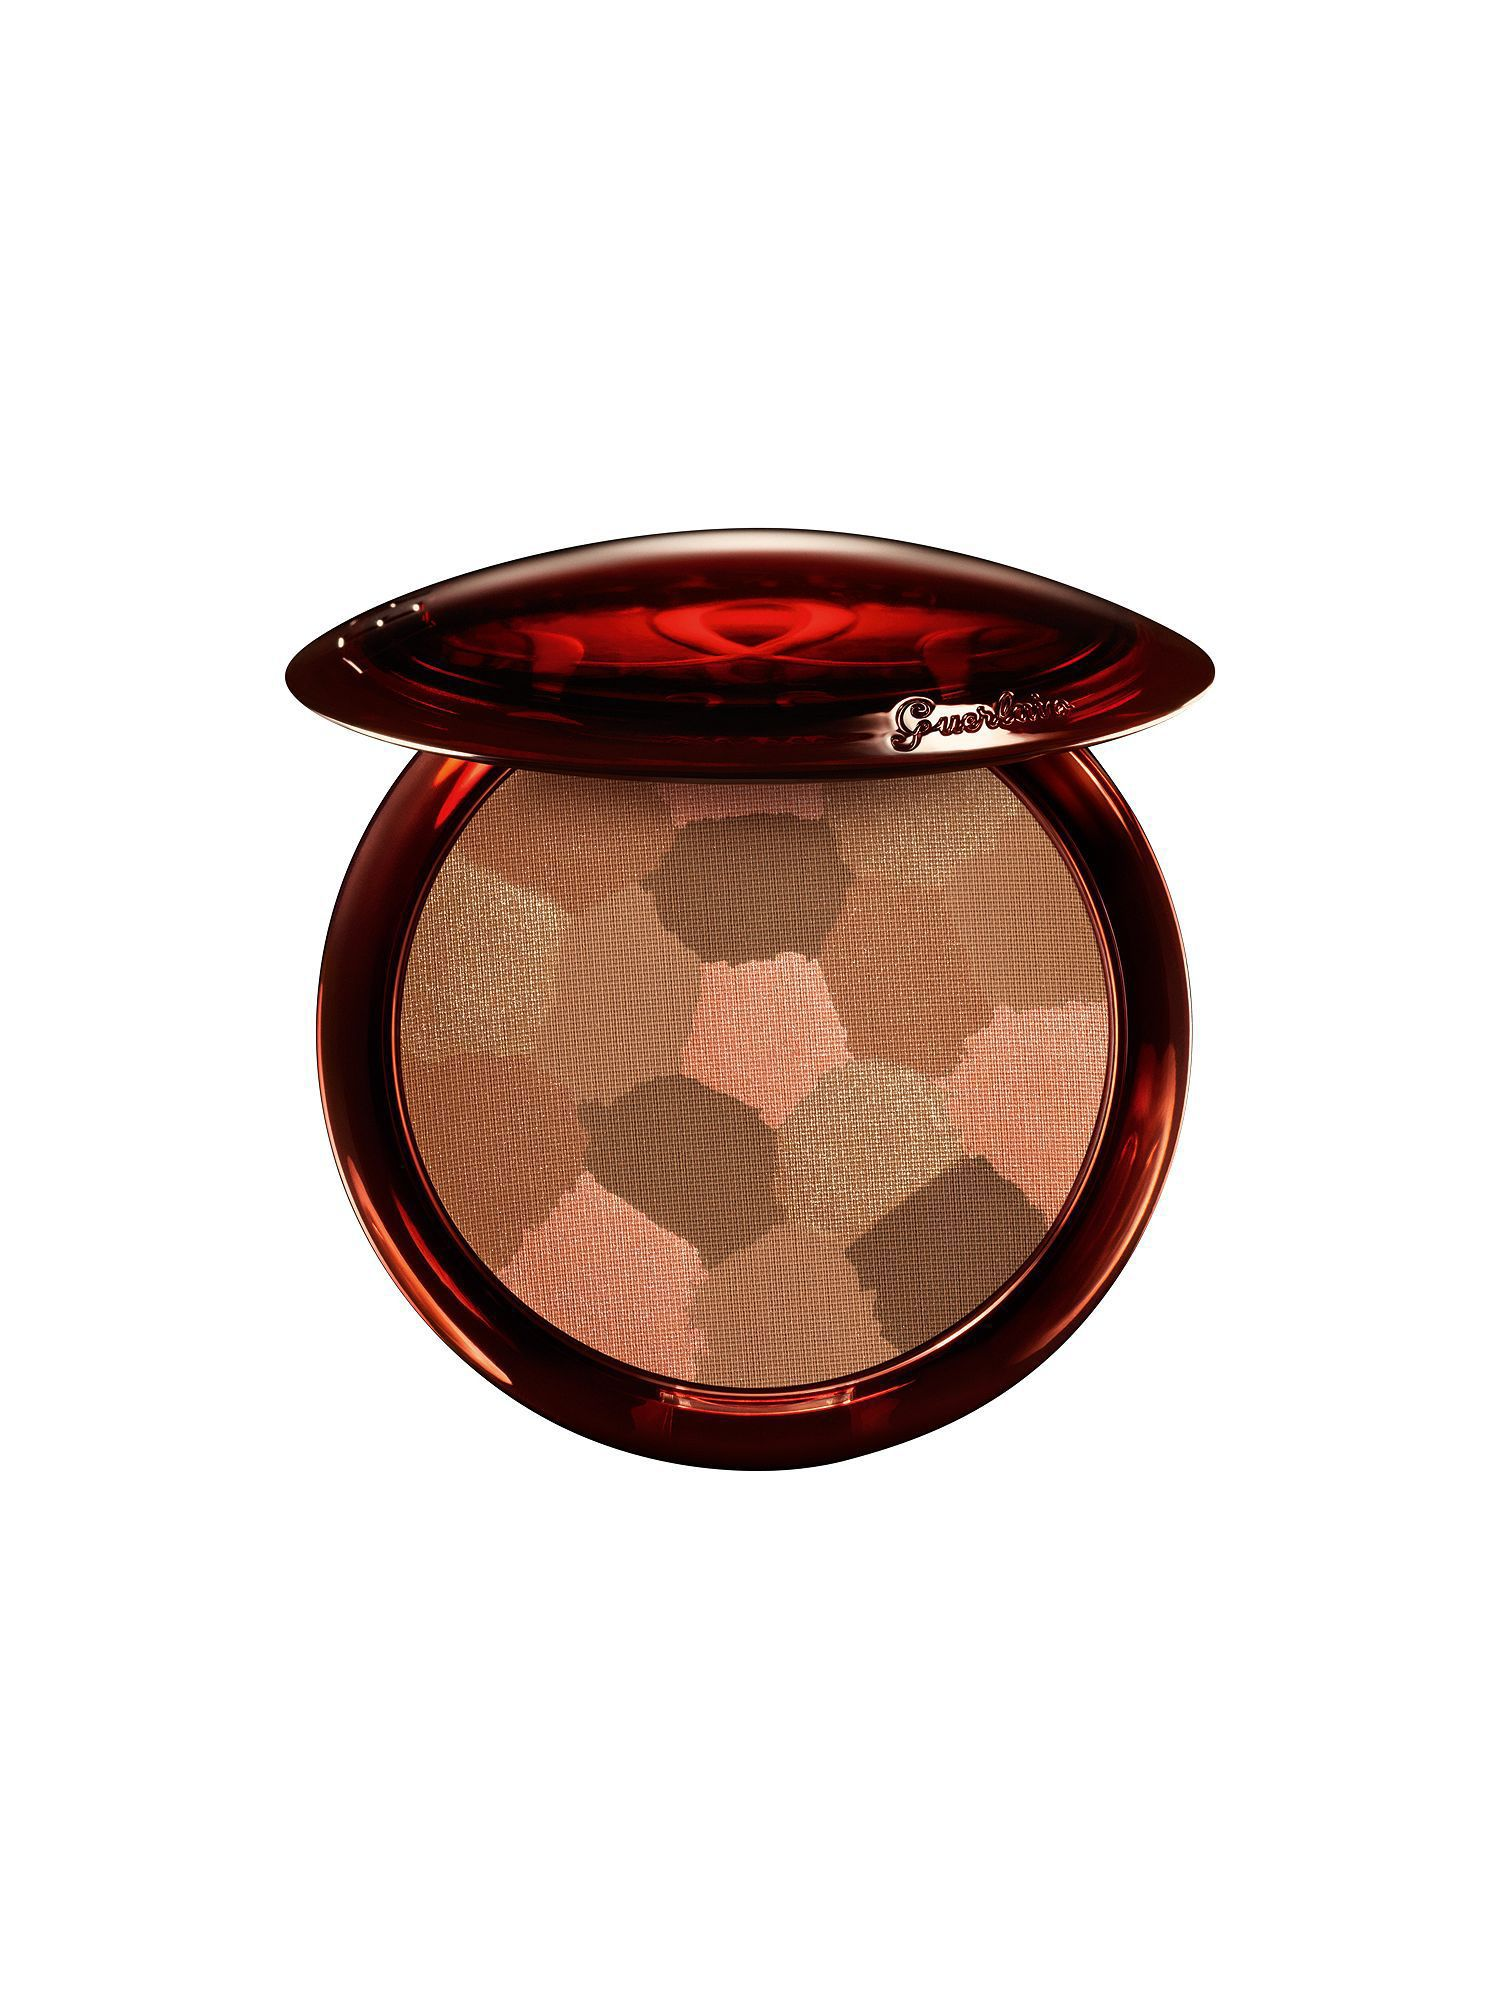 Guerlain terracotta light sheer bronzing powder octer for Housse of fraser